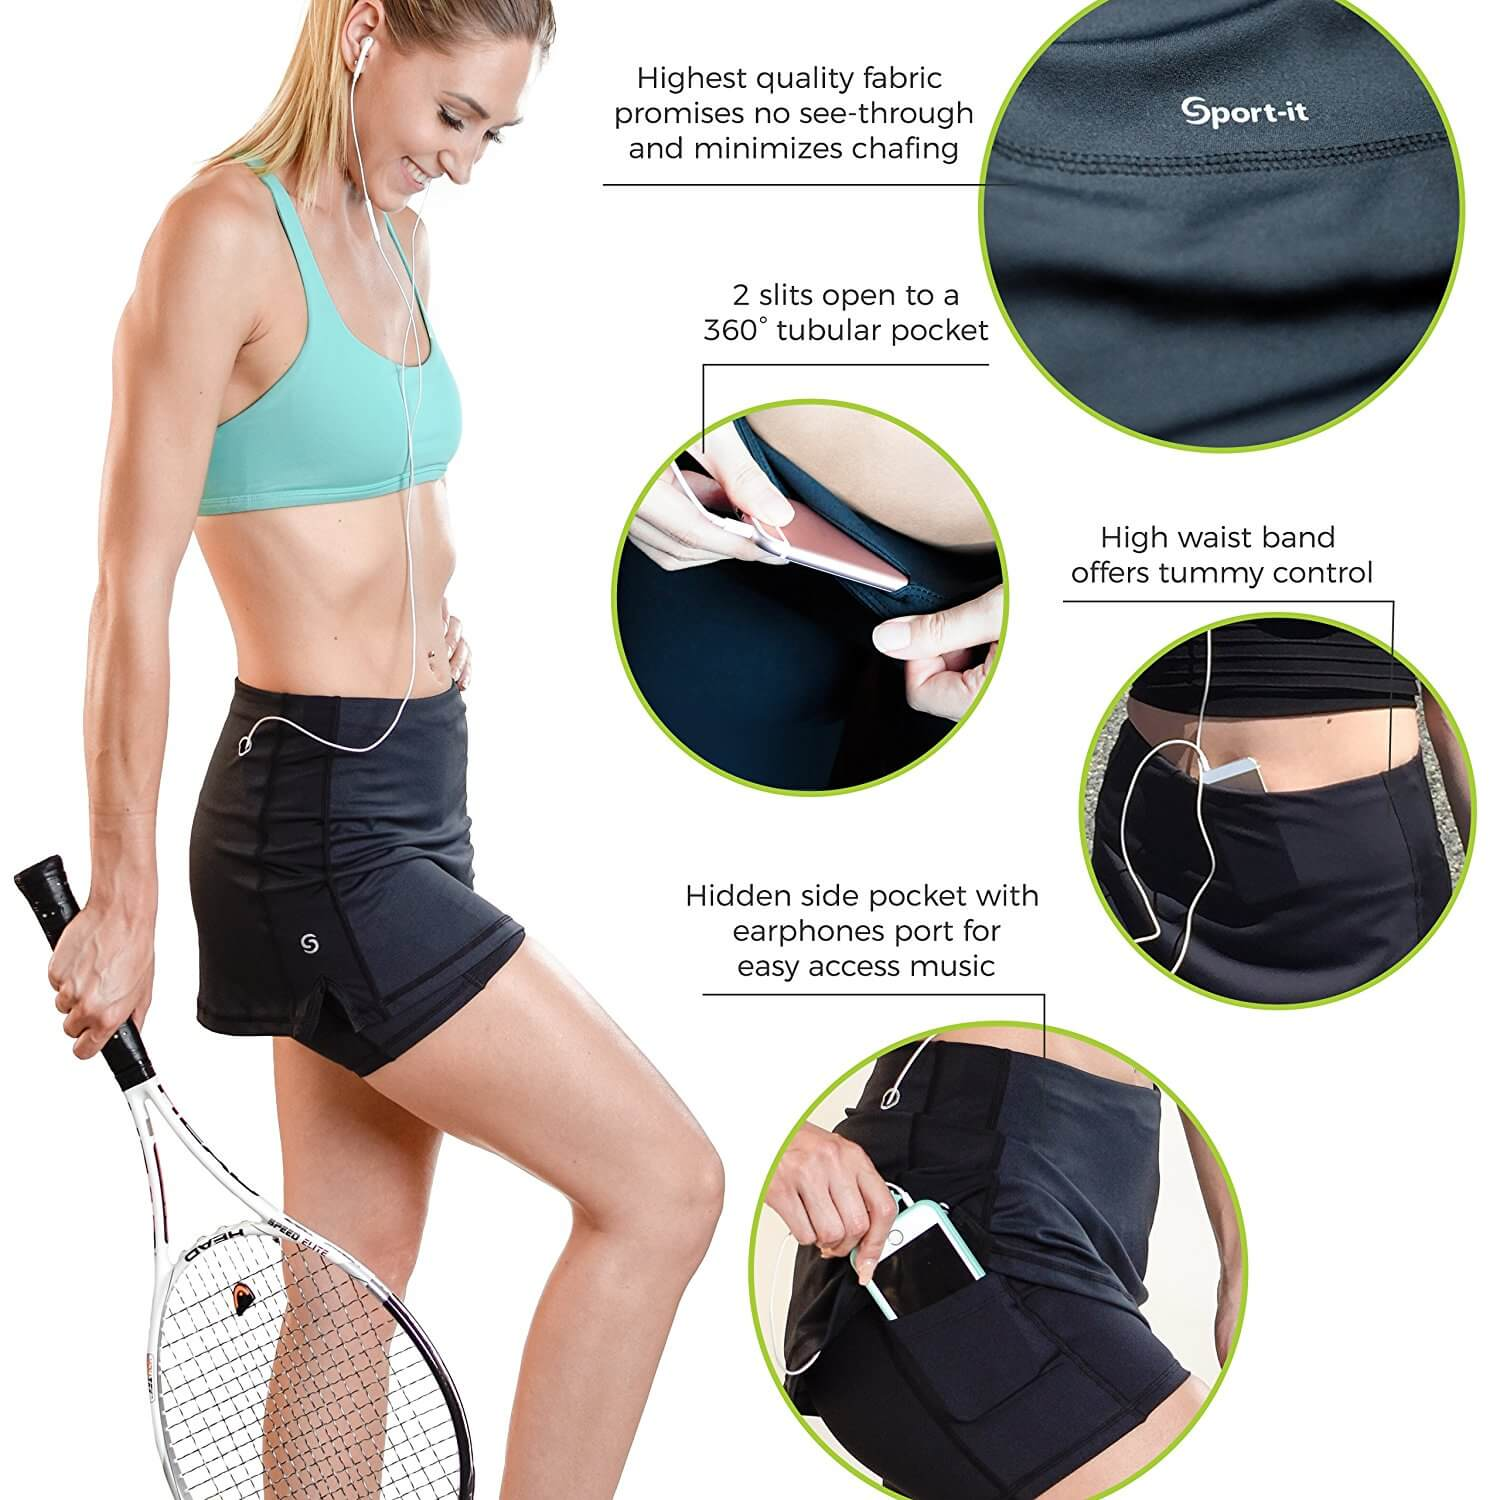 Go Sport-it: TENNIS SKORT with Built-in Shorts, Pockets, Tummy Control